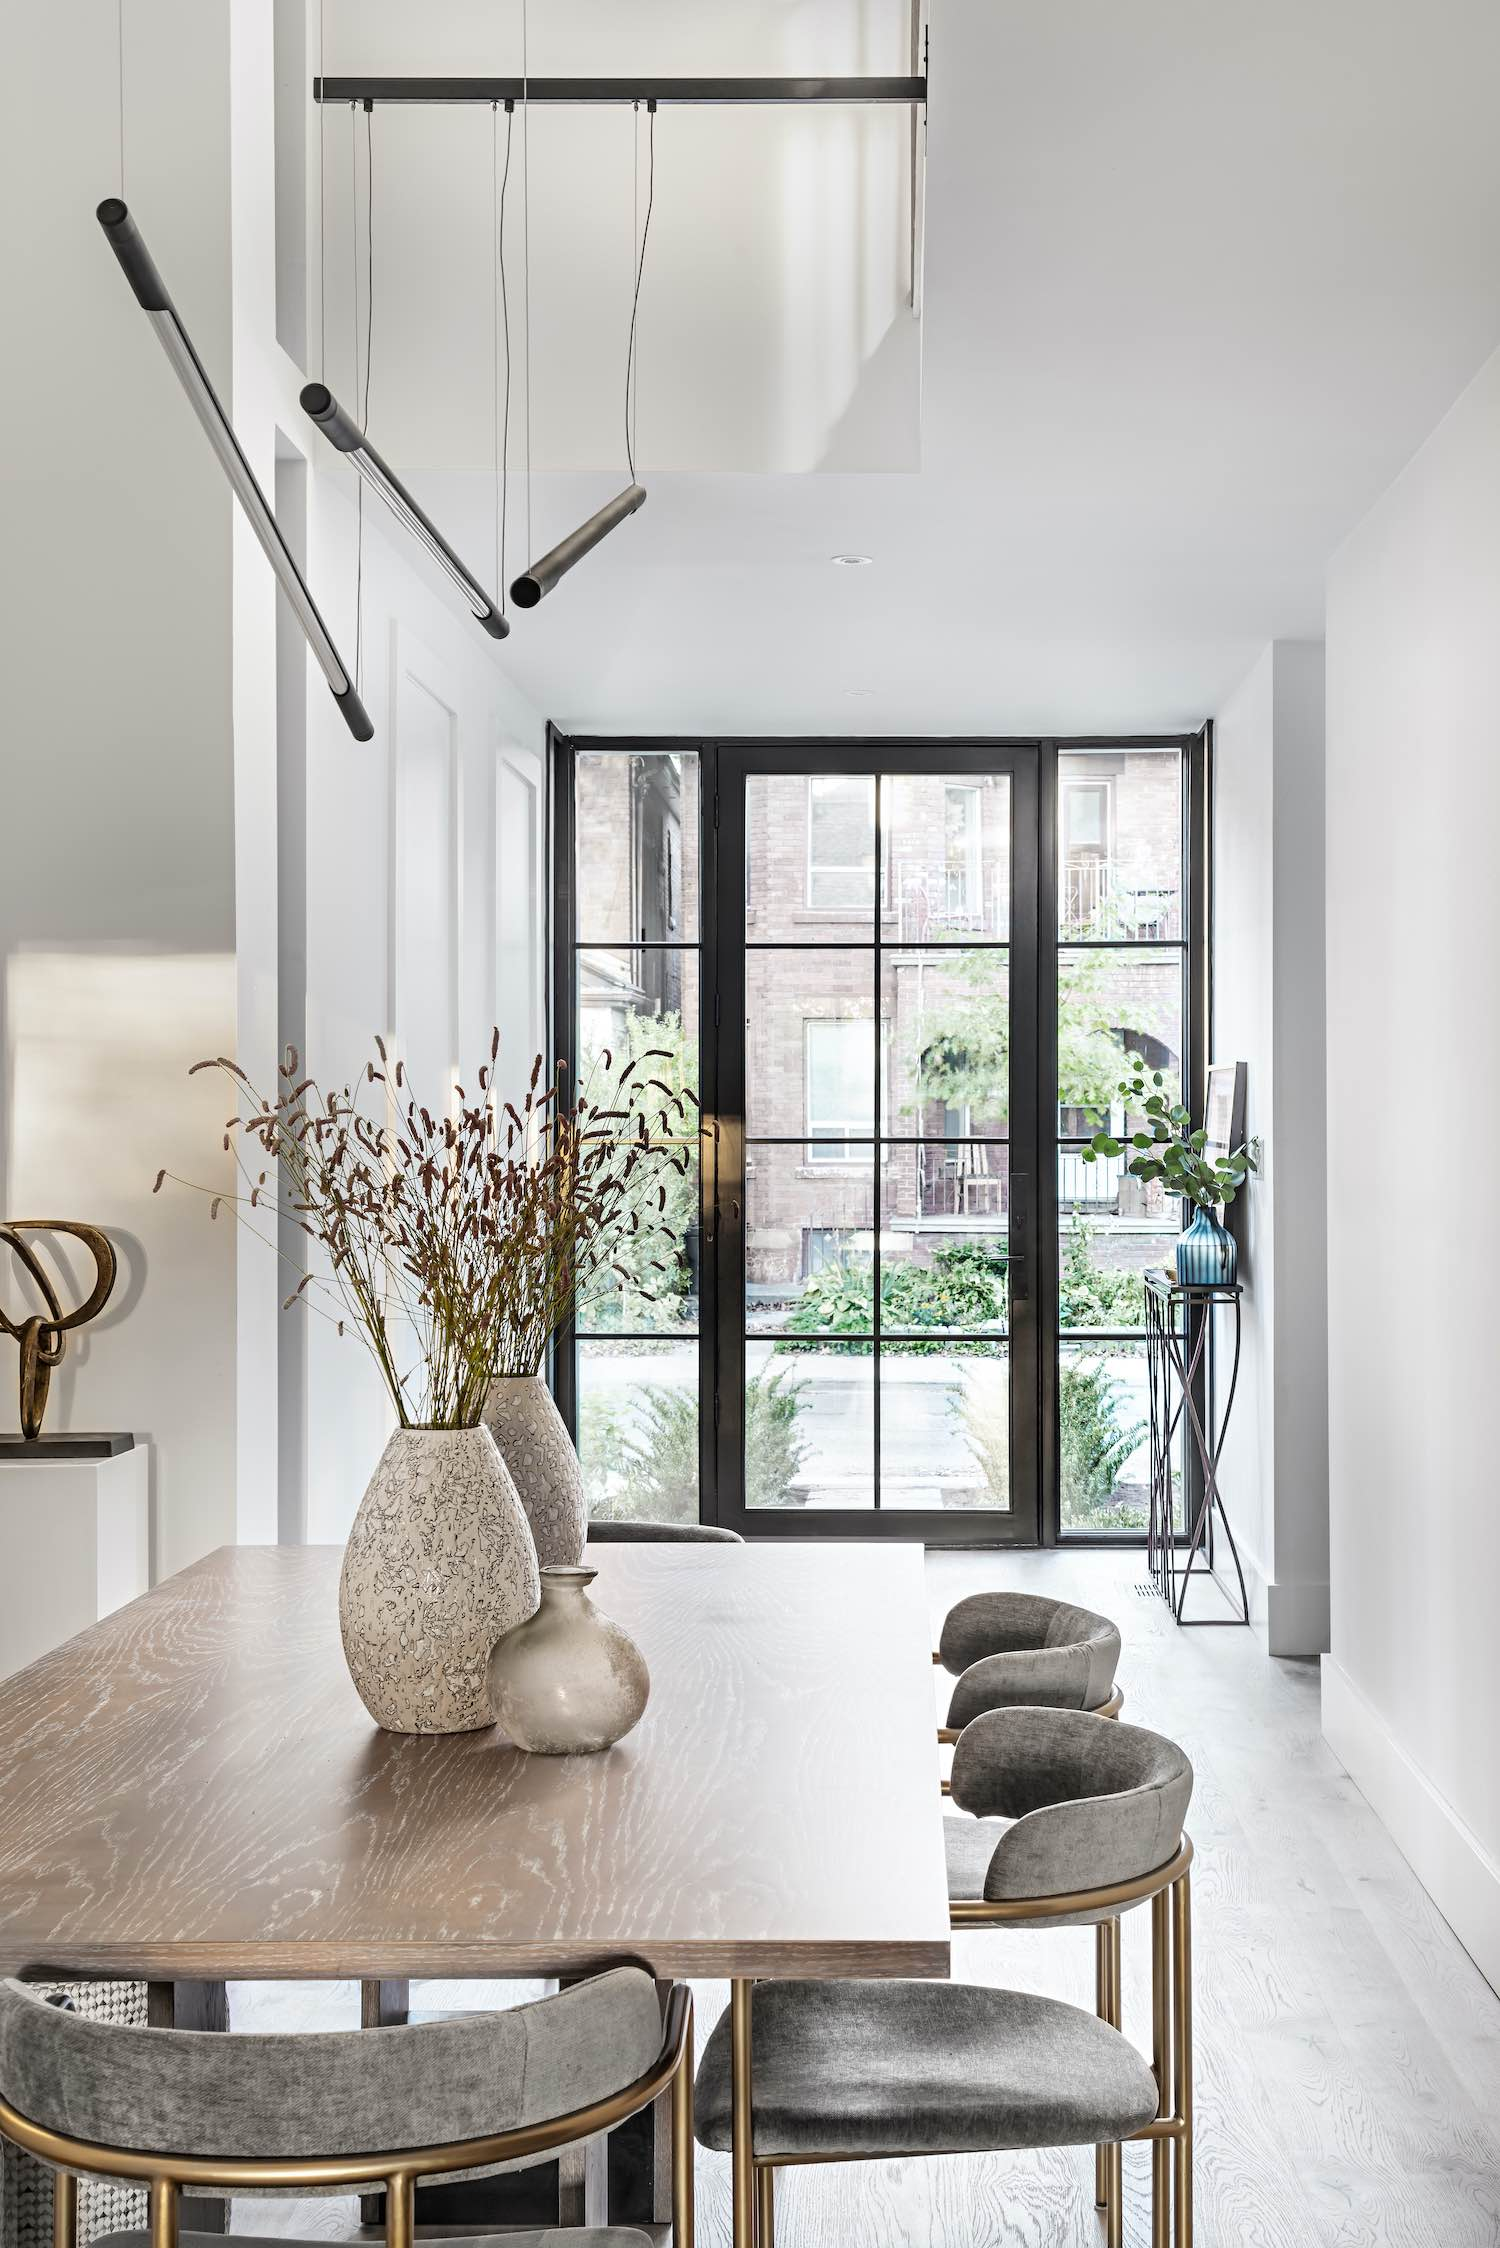 sunlights enters the dining area through large windows